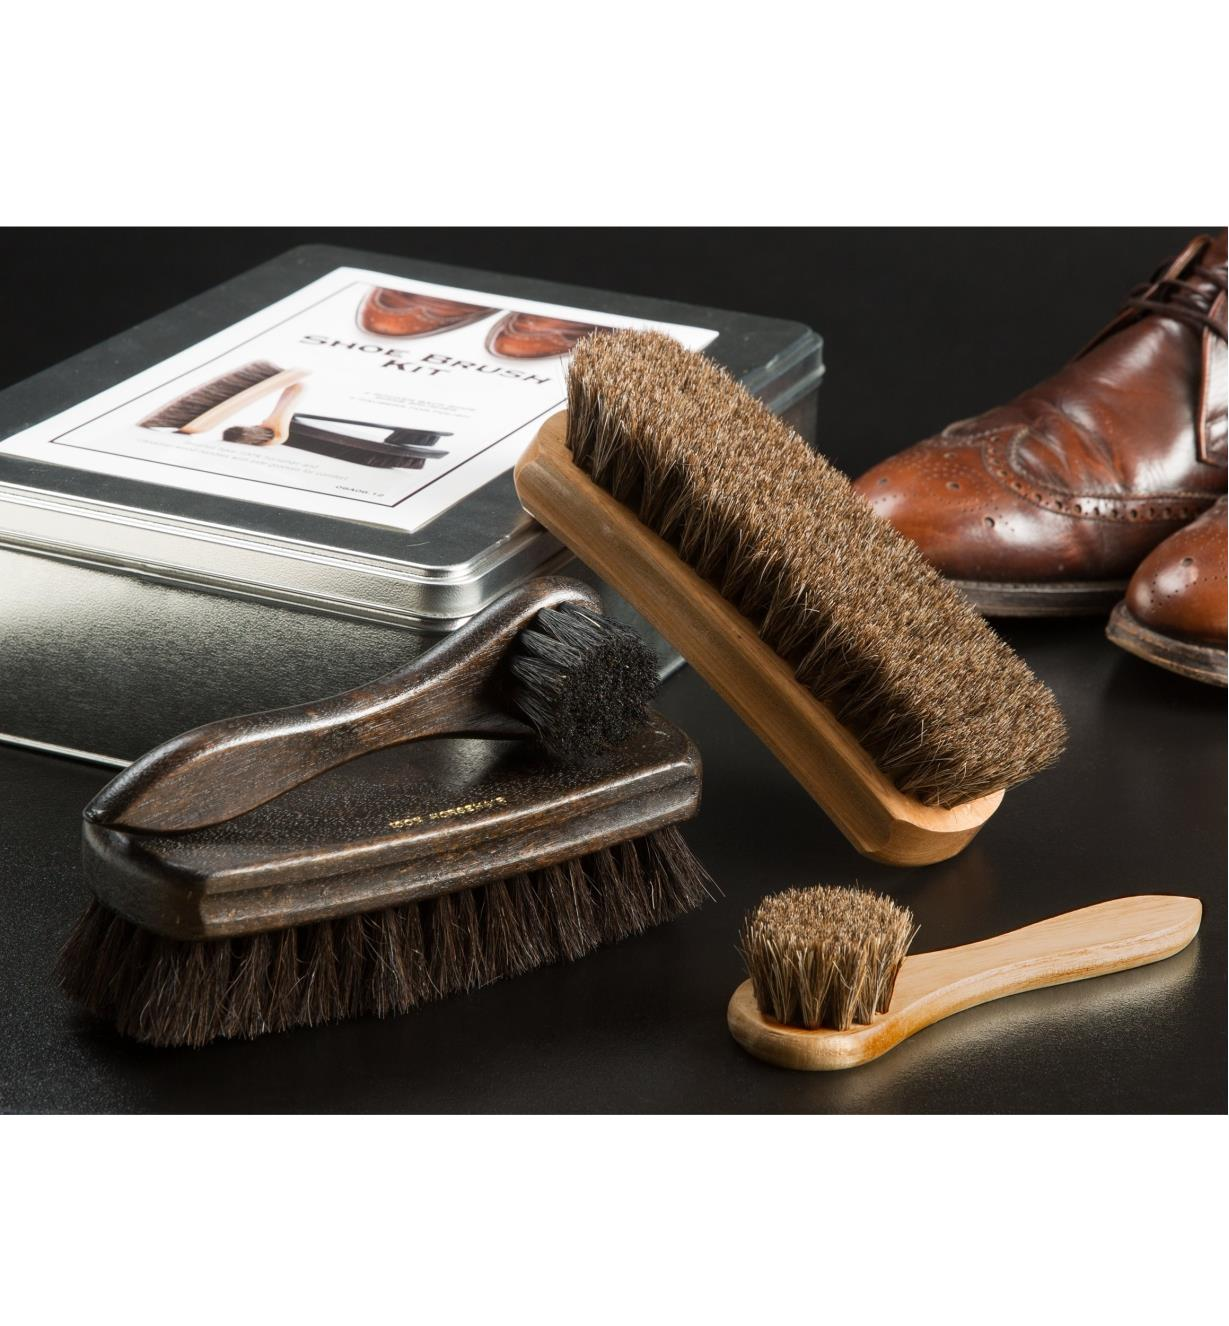 HB130 - Shoe Brush, set of 4